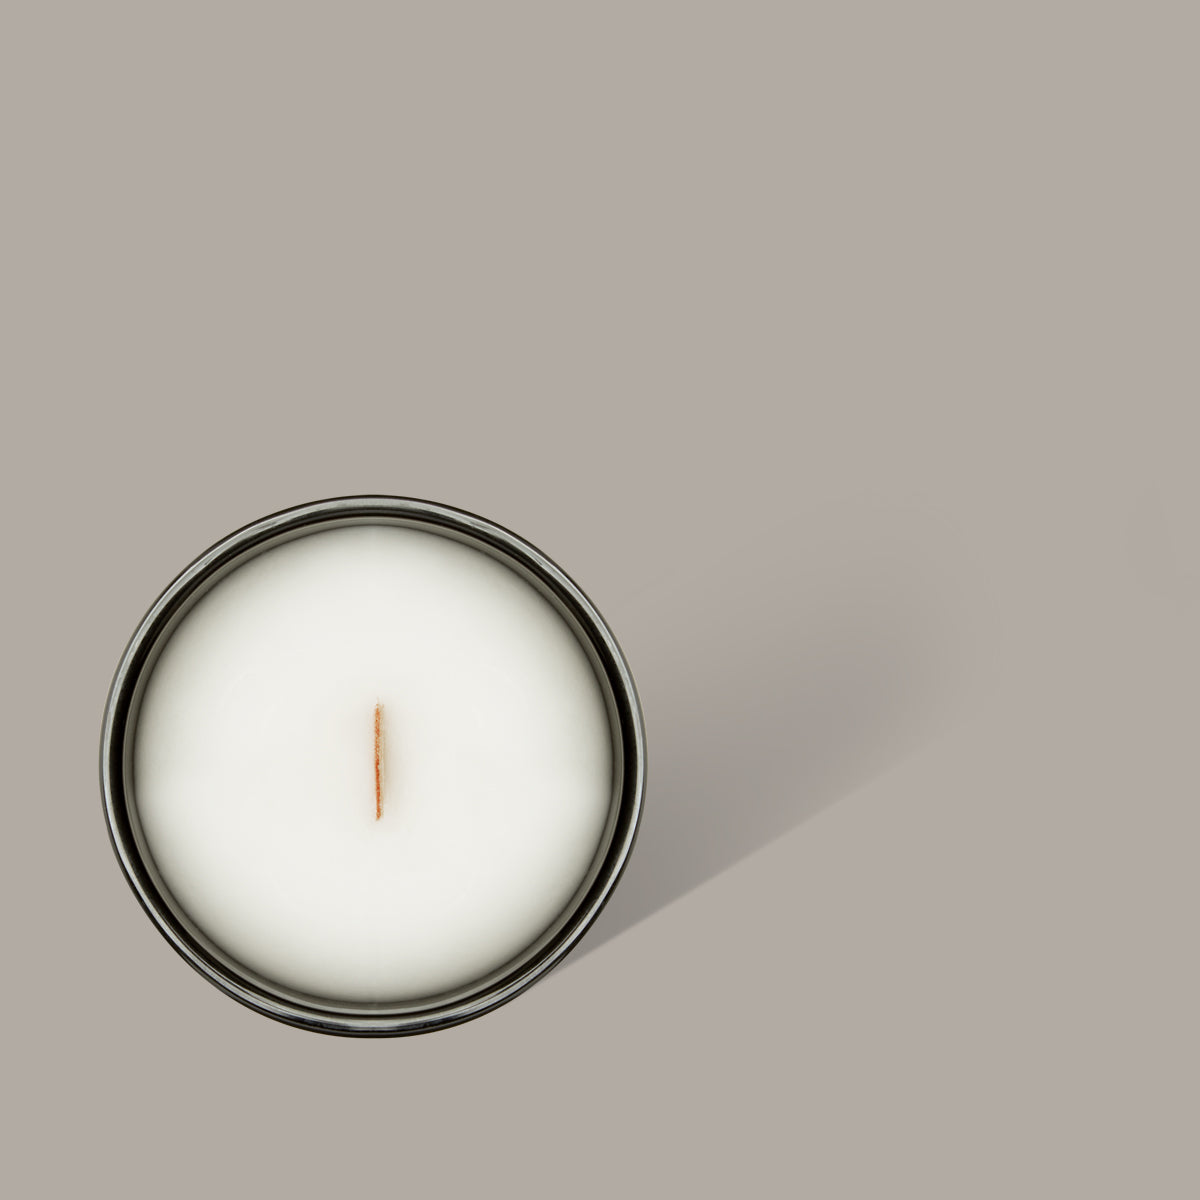 FOLKS GATHERING Scented Candle, THE GREAT OUTDOOR COLLECTION, BLACK BLAZE, BLACK BLAZE - BLACK BLAZE | Scents of Australia | Natural Home Fragrance Label  | Australia's 1St Wooden Wick Candle